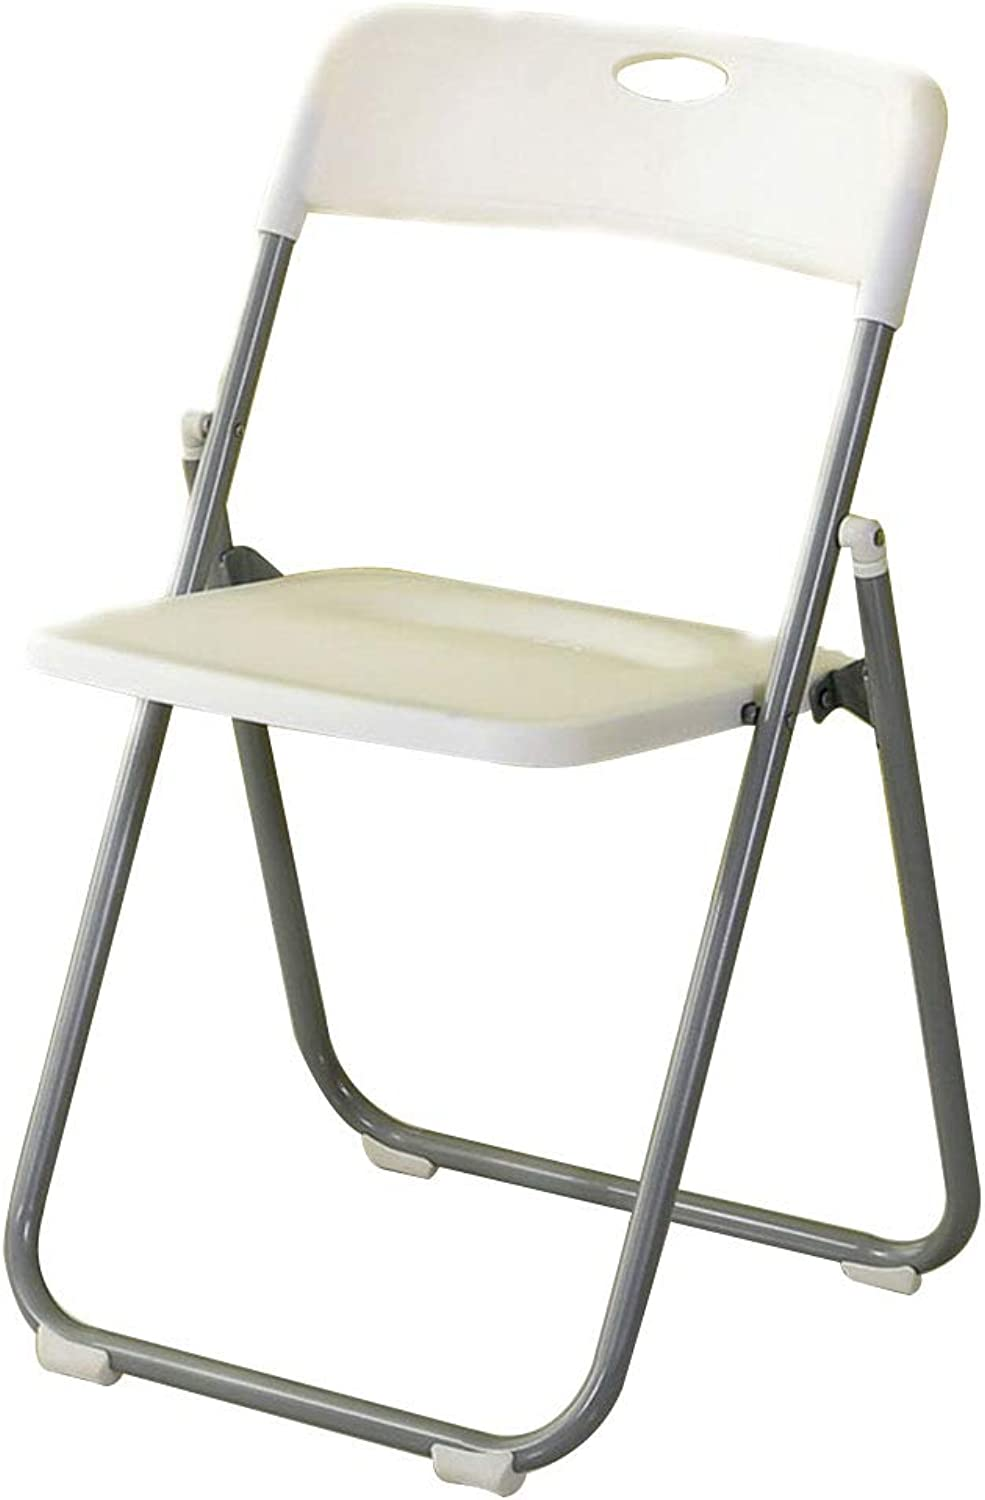 Chair Chair, Portable Handle Foldable Steel Frame Ergonomic Design Simple Household Dining Chair Bathroom Stool 5 colors (color   White)